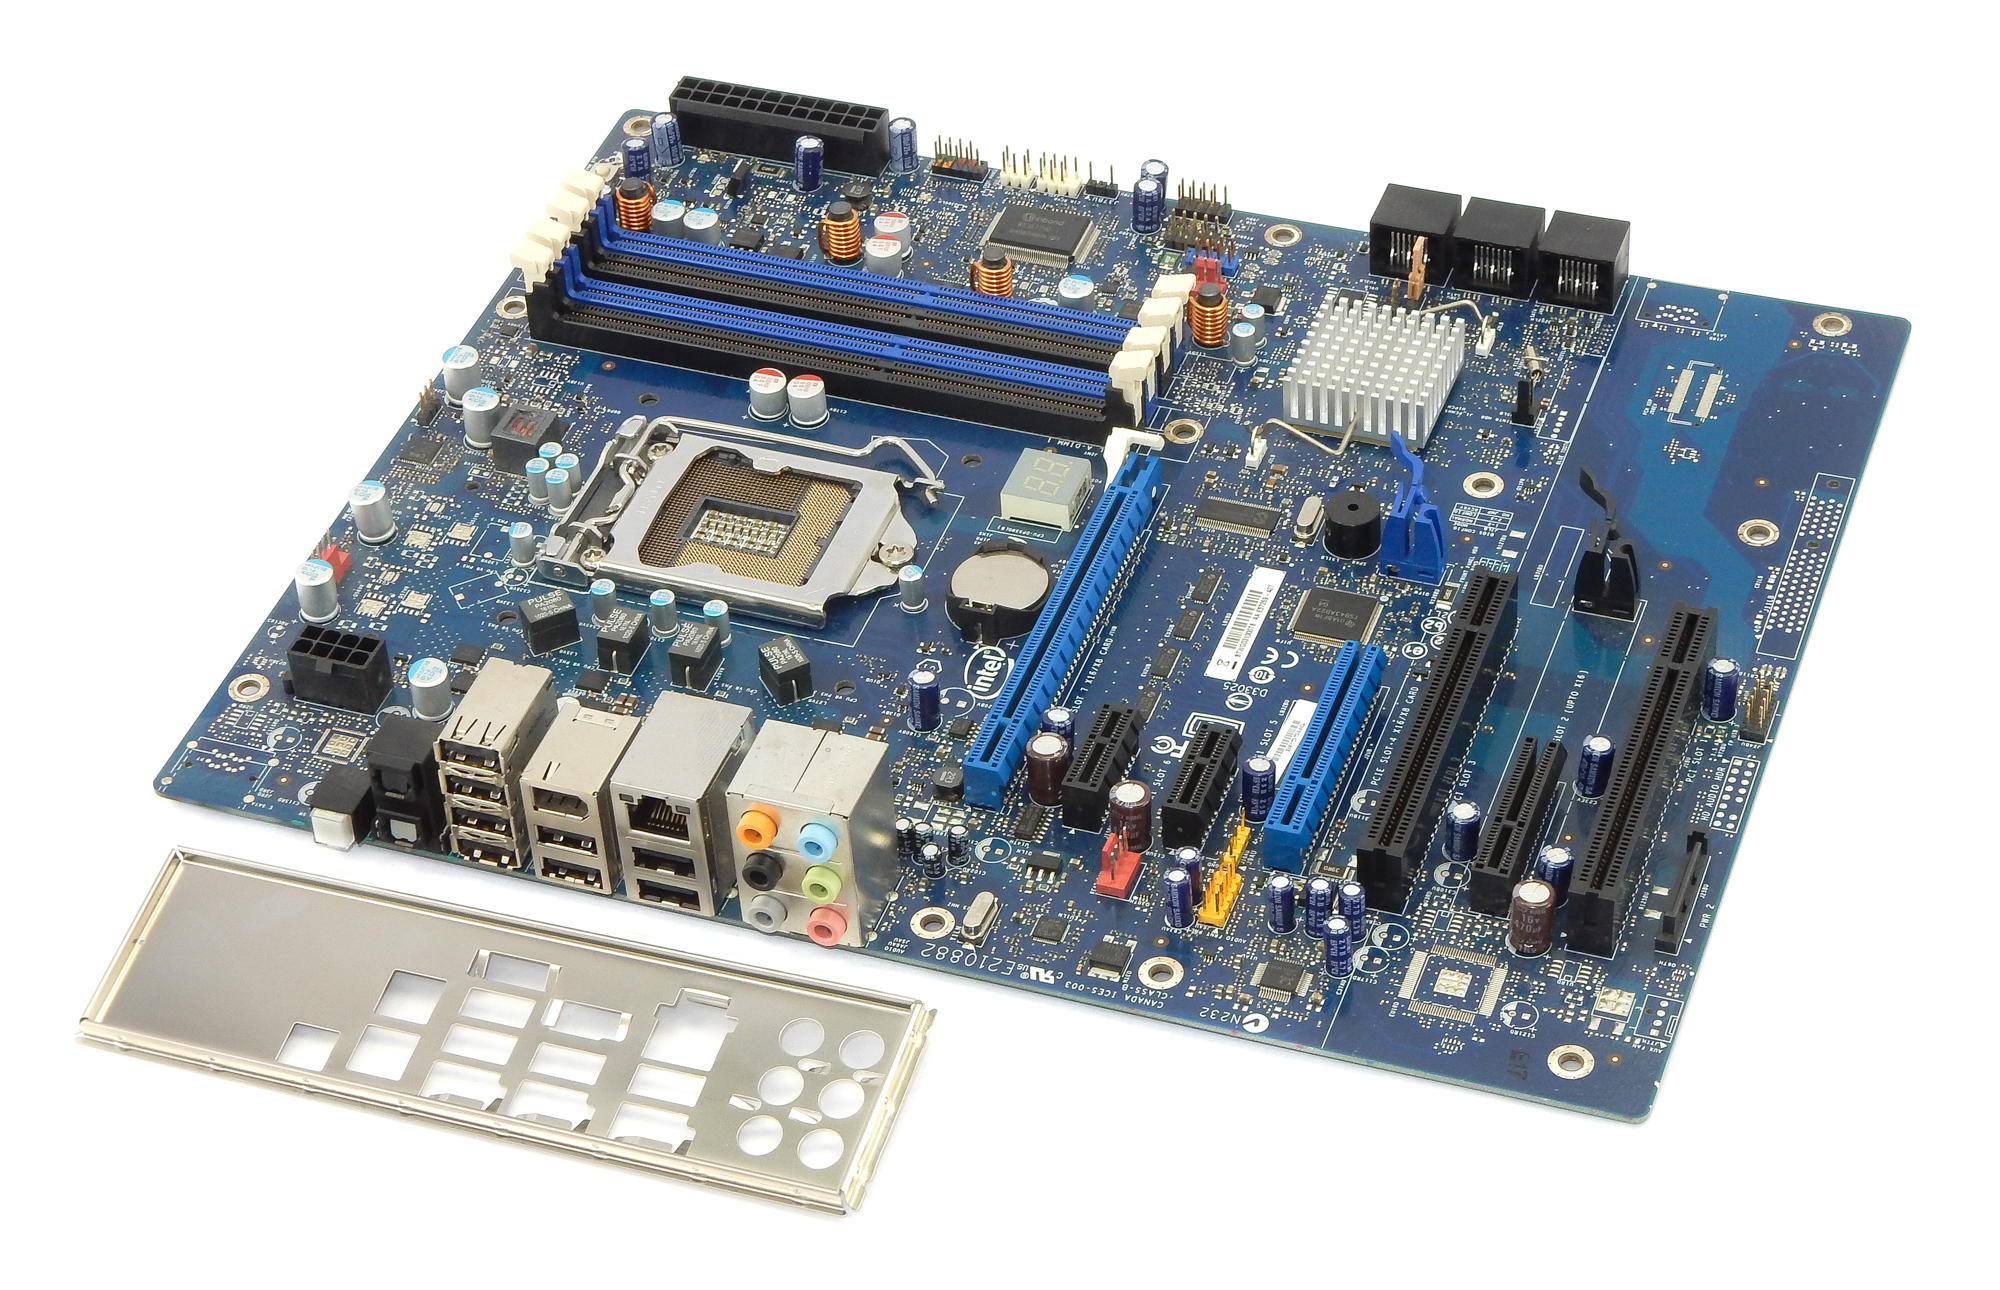 Intel DP55WG Socket 1156 ATX Motherboard